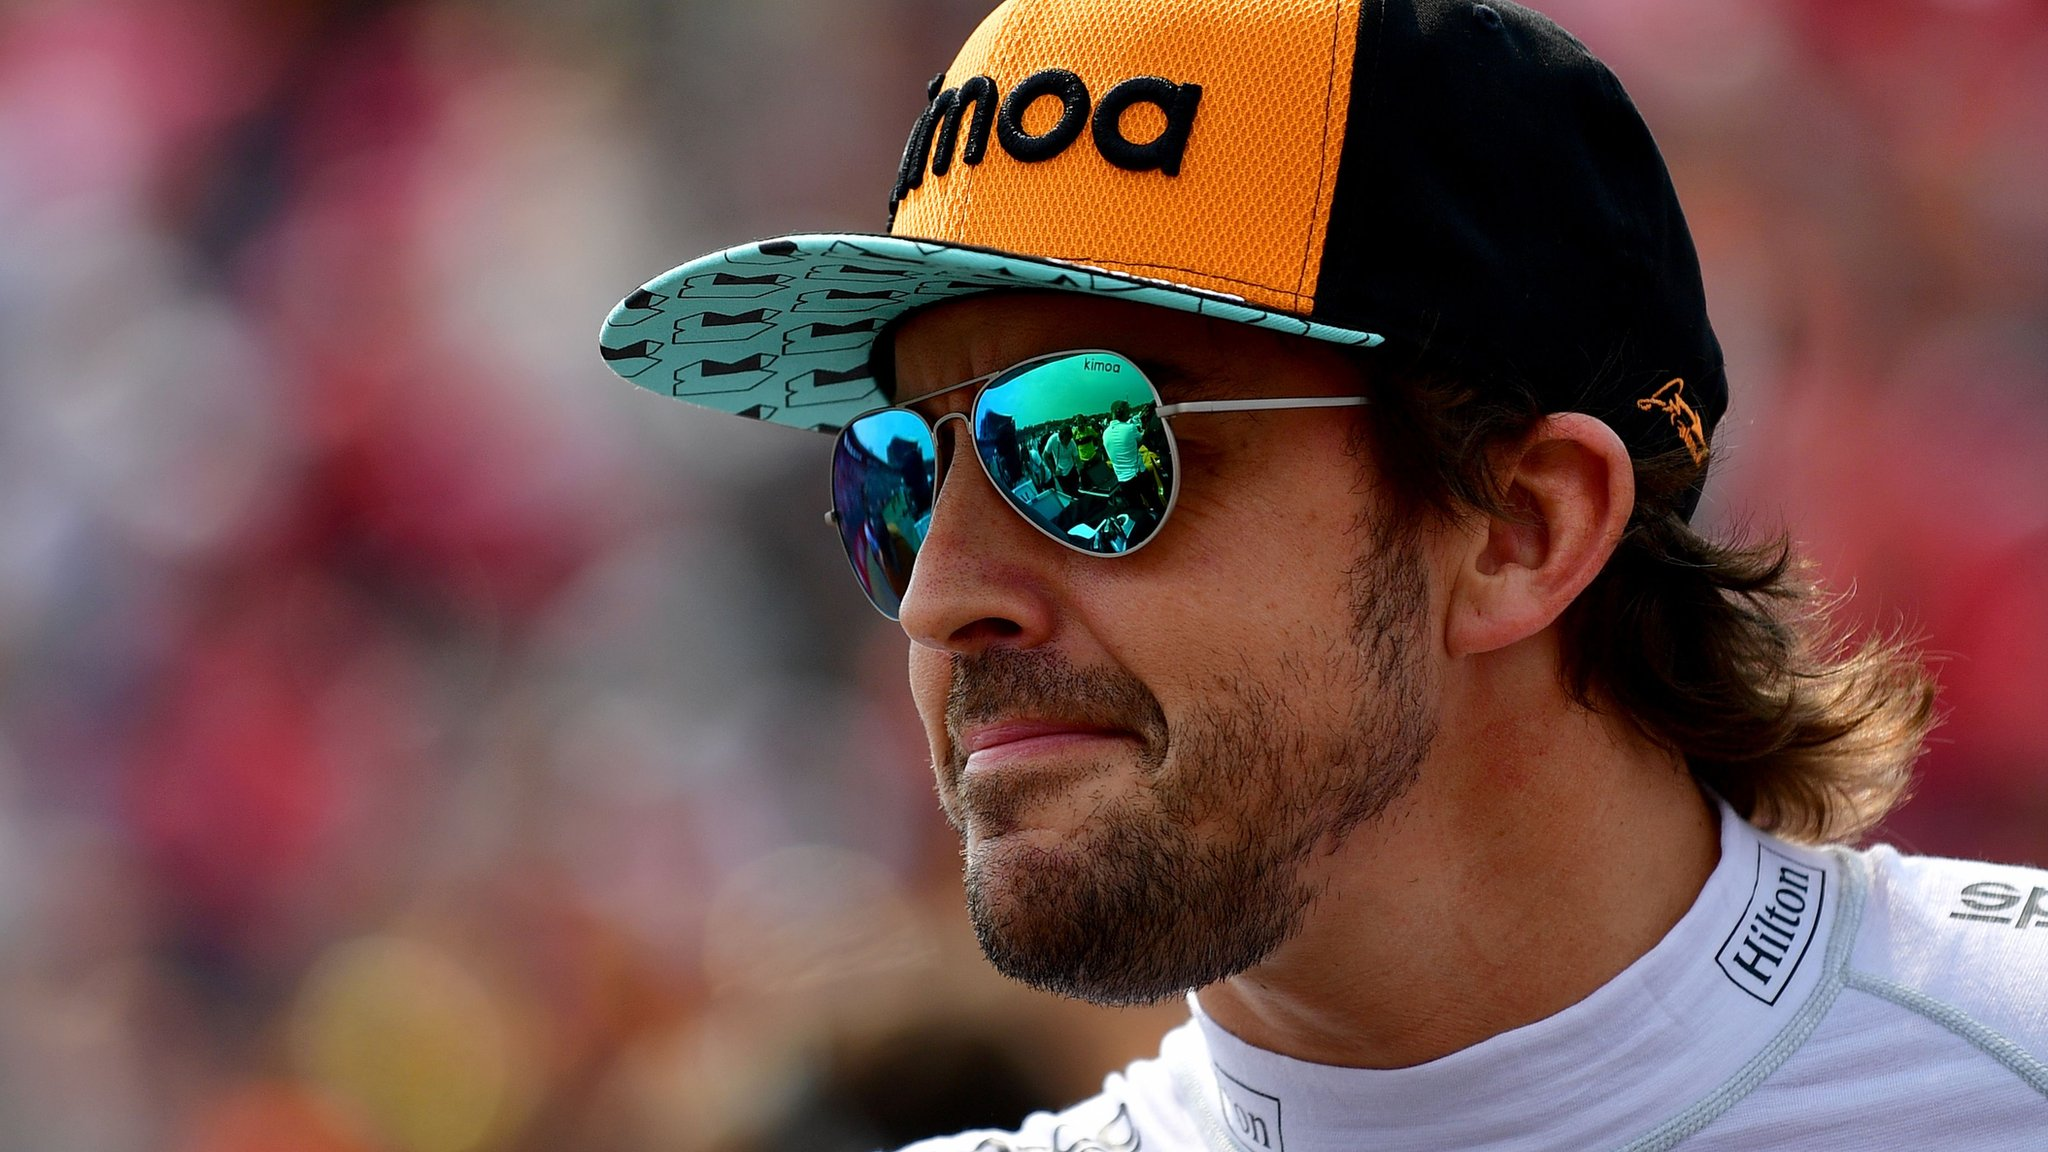 Fernando Alonso: McLaren's Spanish driver to retire from Formula 1 at end of season